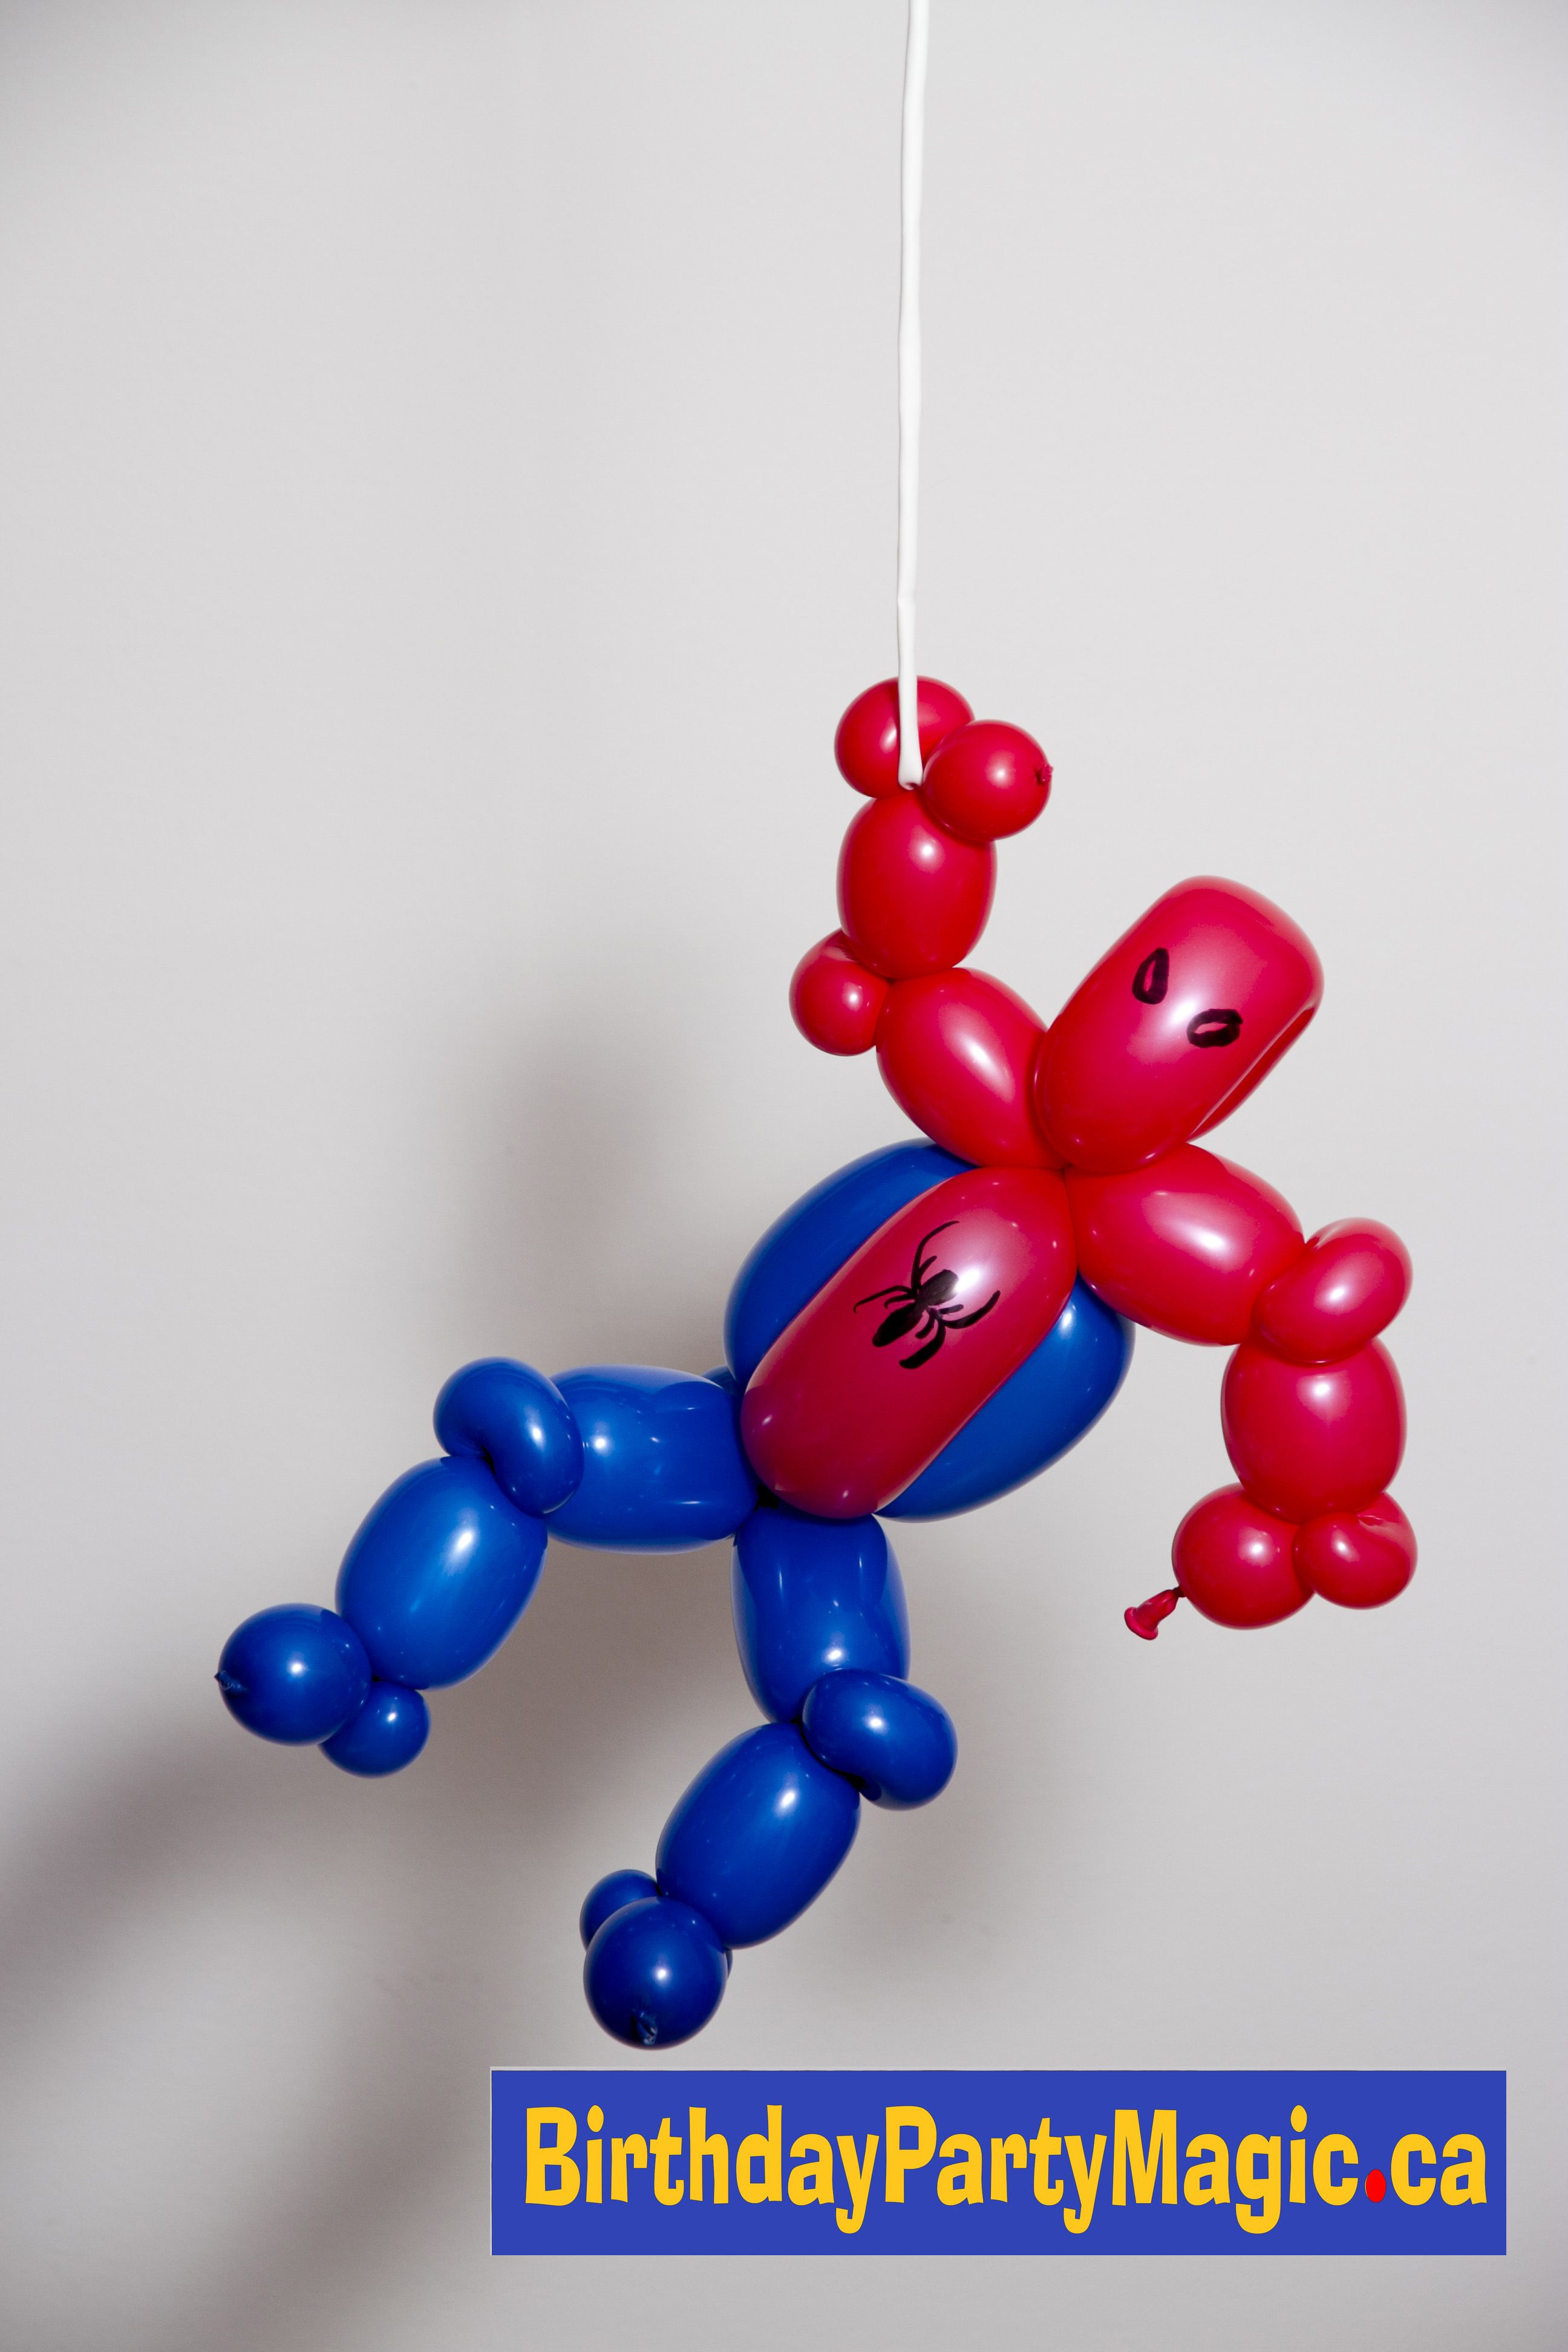 Watch out Here comes the Spiderman balloon B A L L O O N S